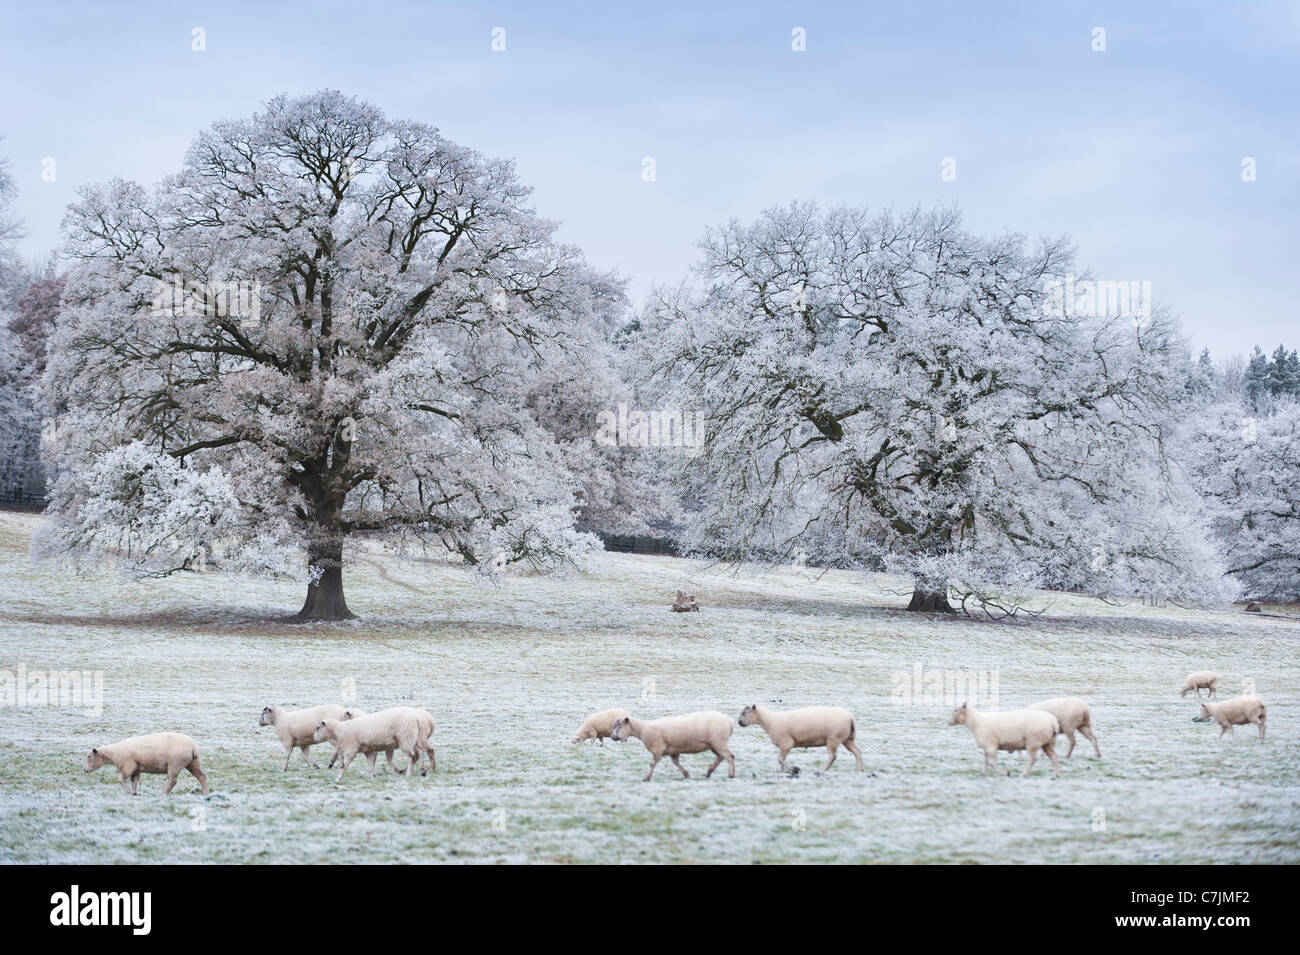 Hoar frost on trees - Stock Image